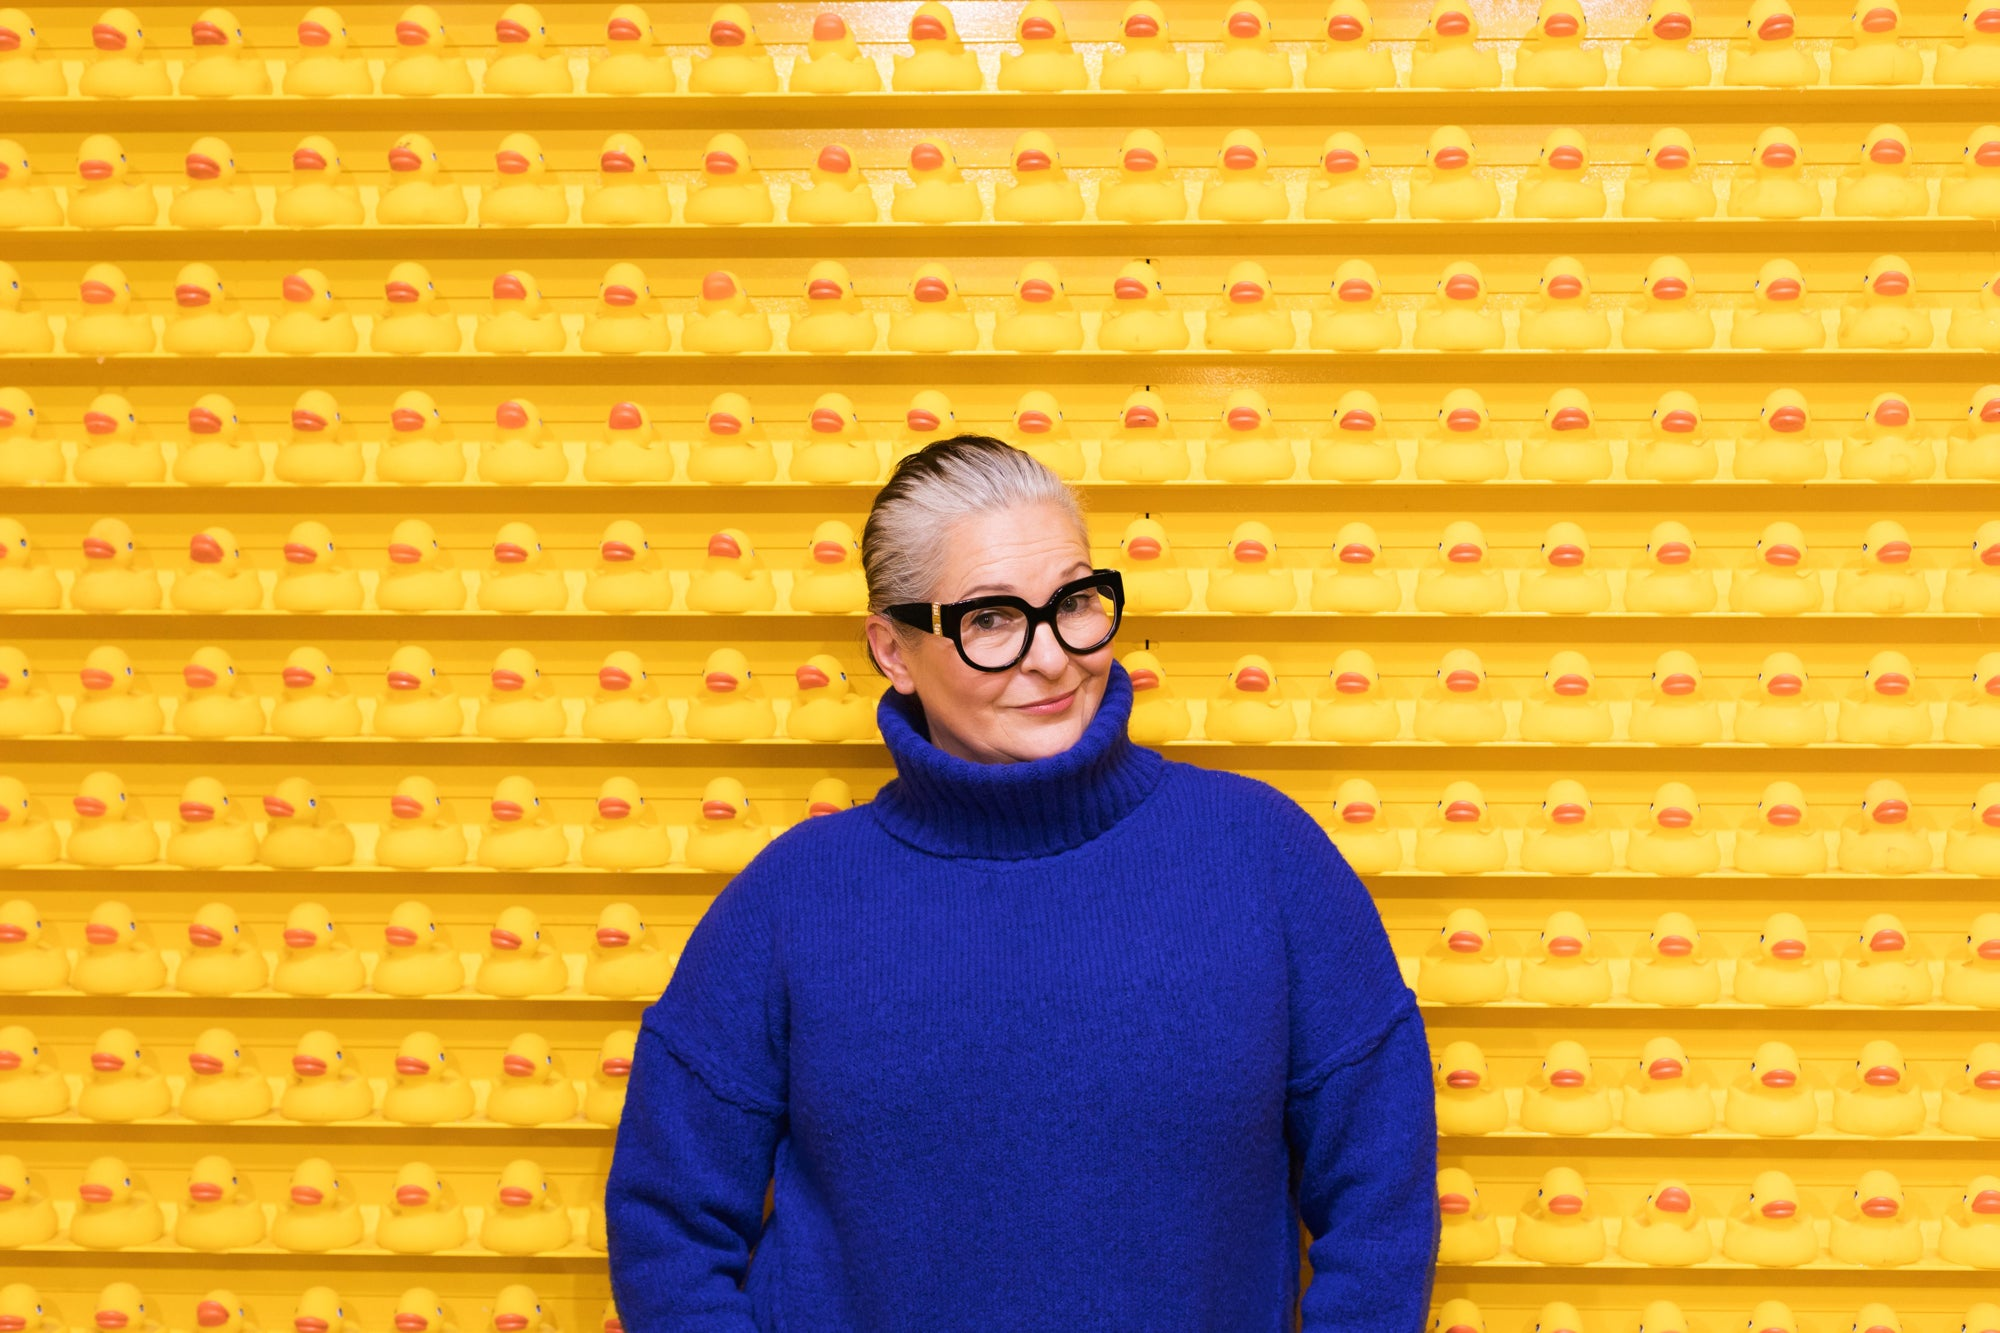 Portrait of an older woman against a yellow wall